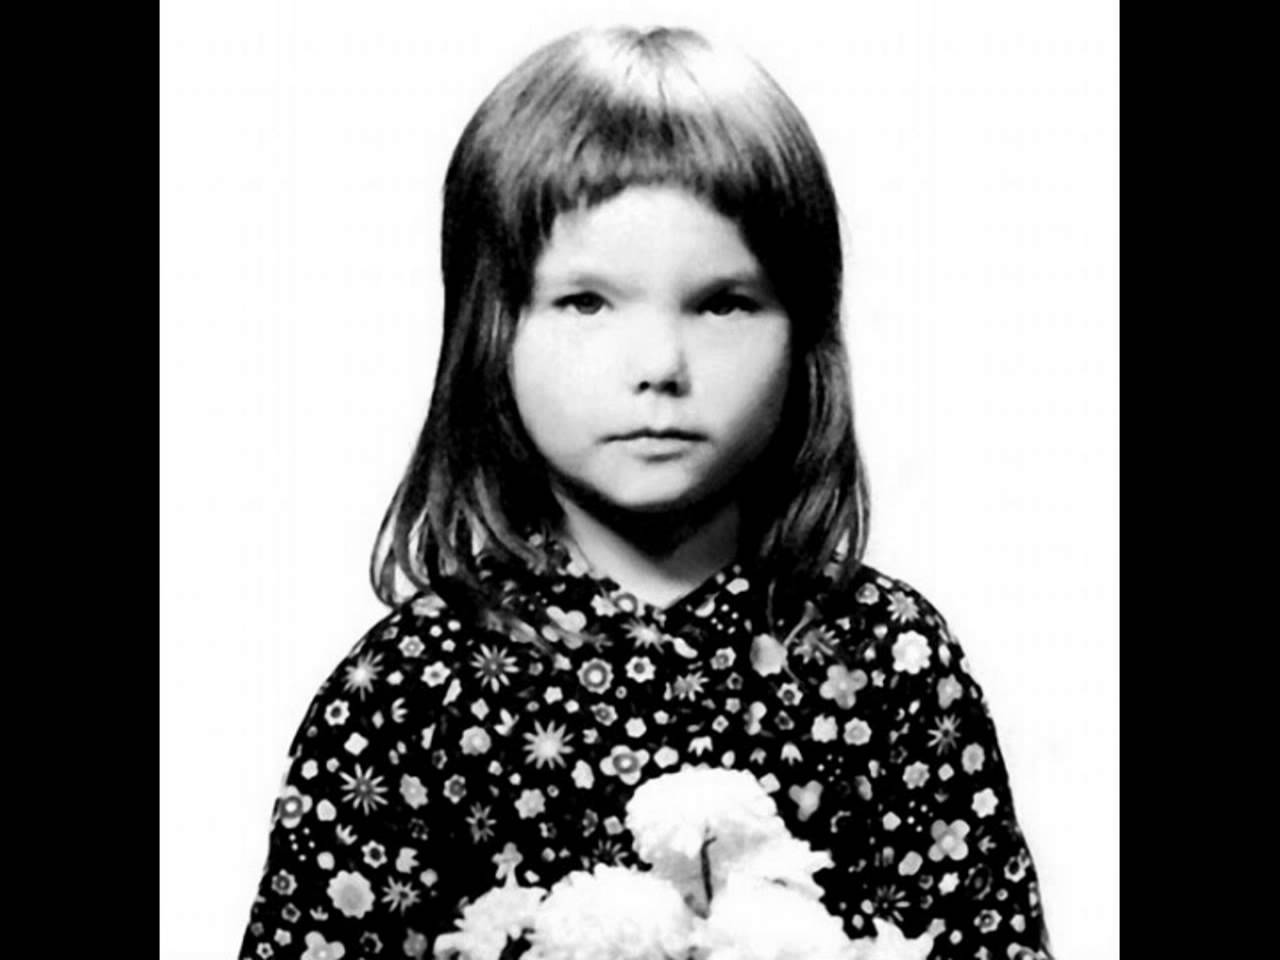 Björk childhood photo one at Youtube.com